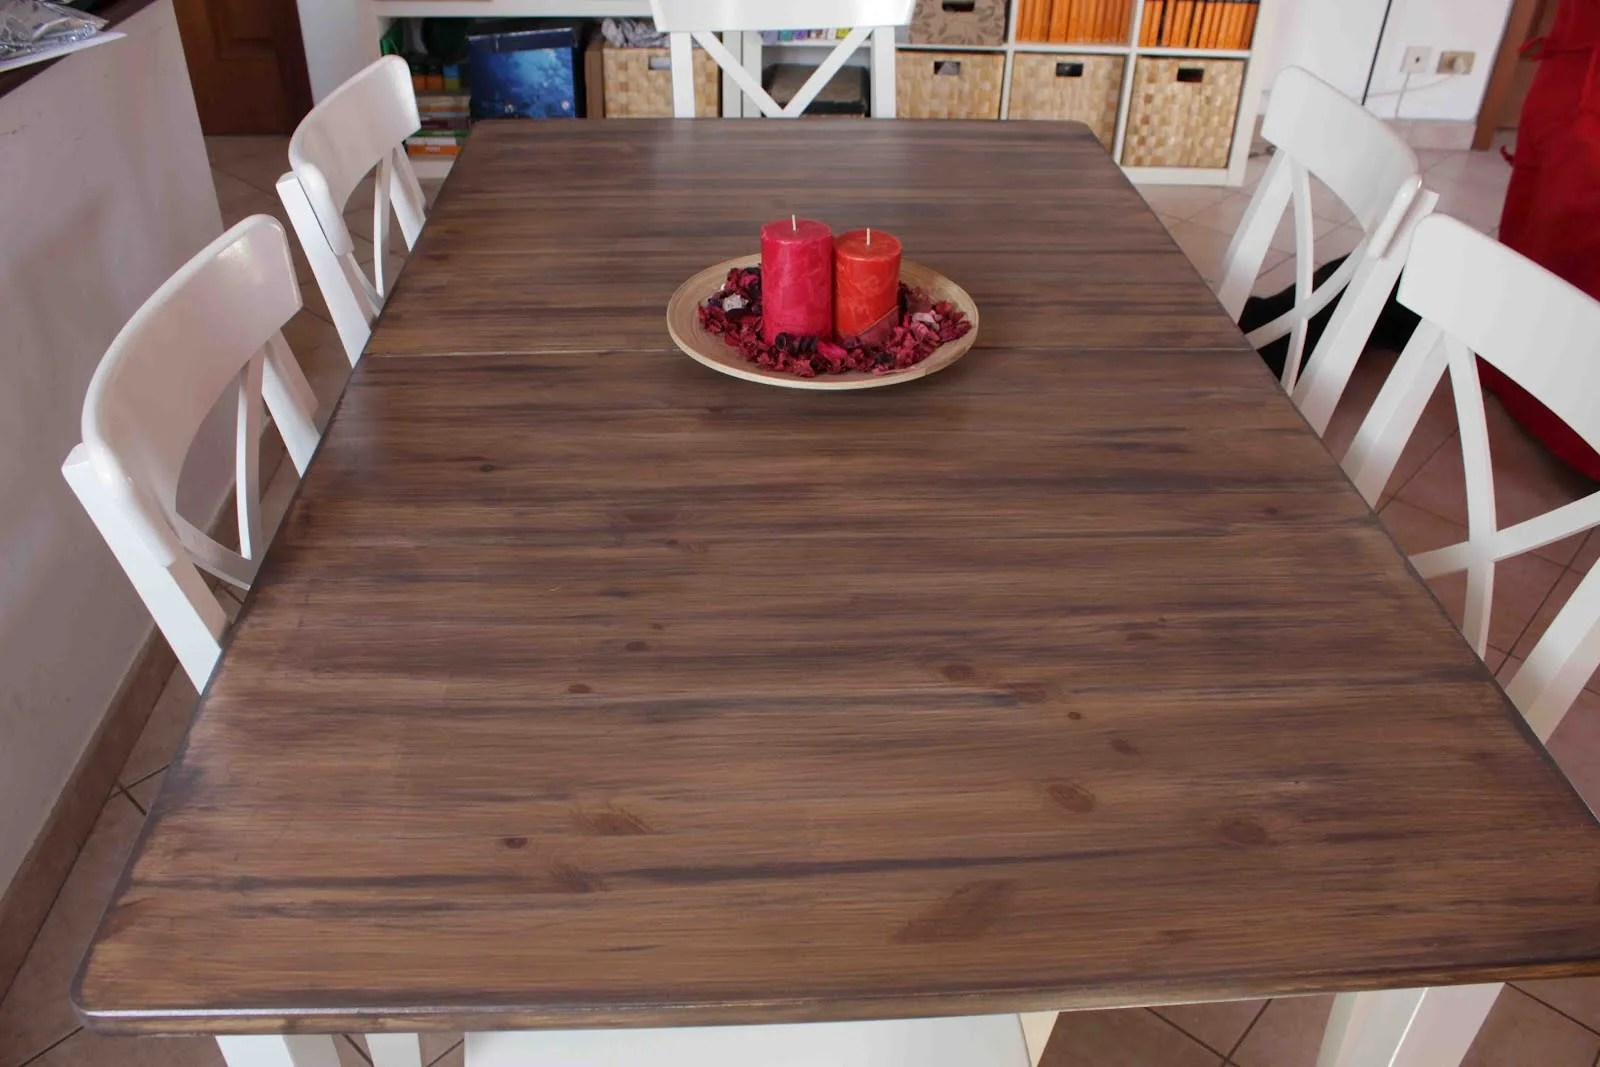 Hack a country kitchen style dining table ikea hackers - Birch kitchen table ...